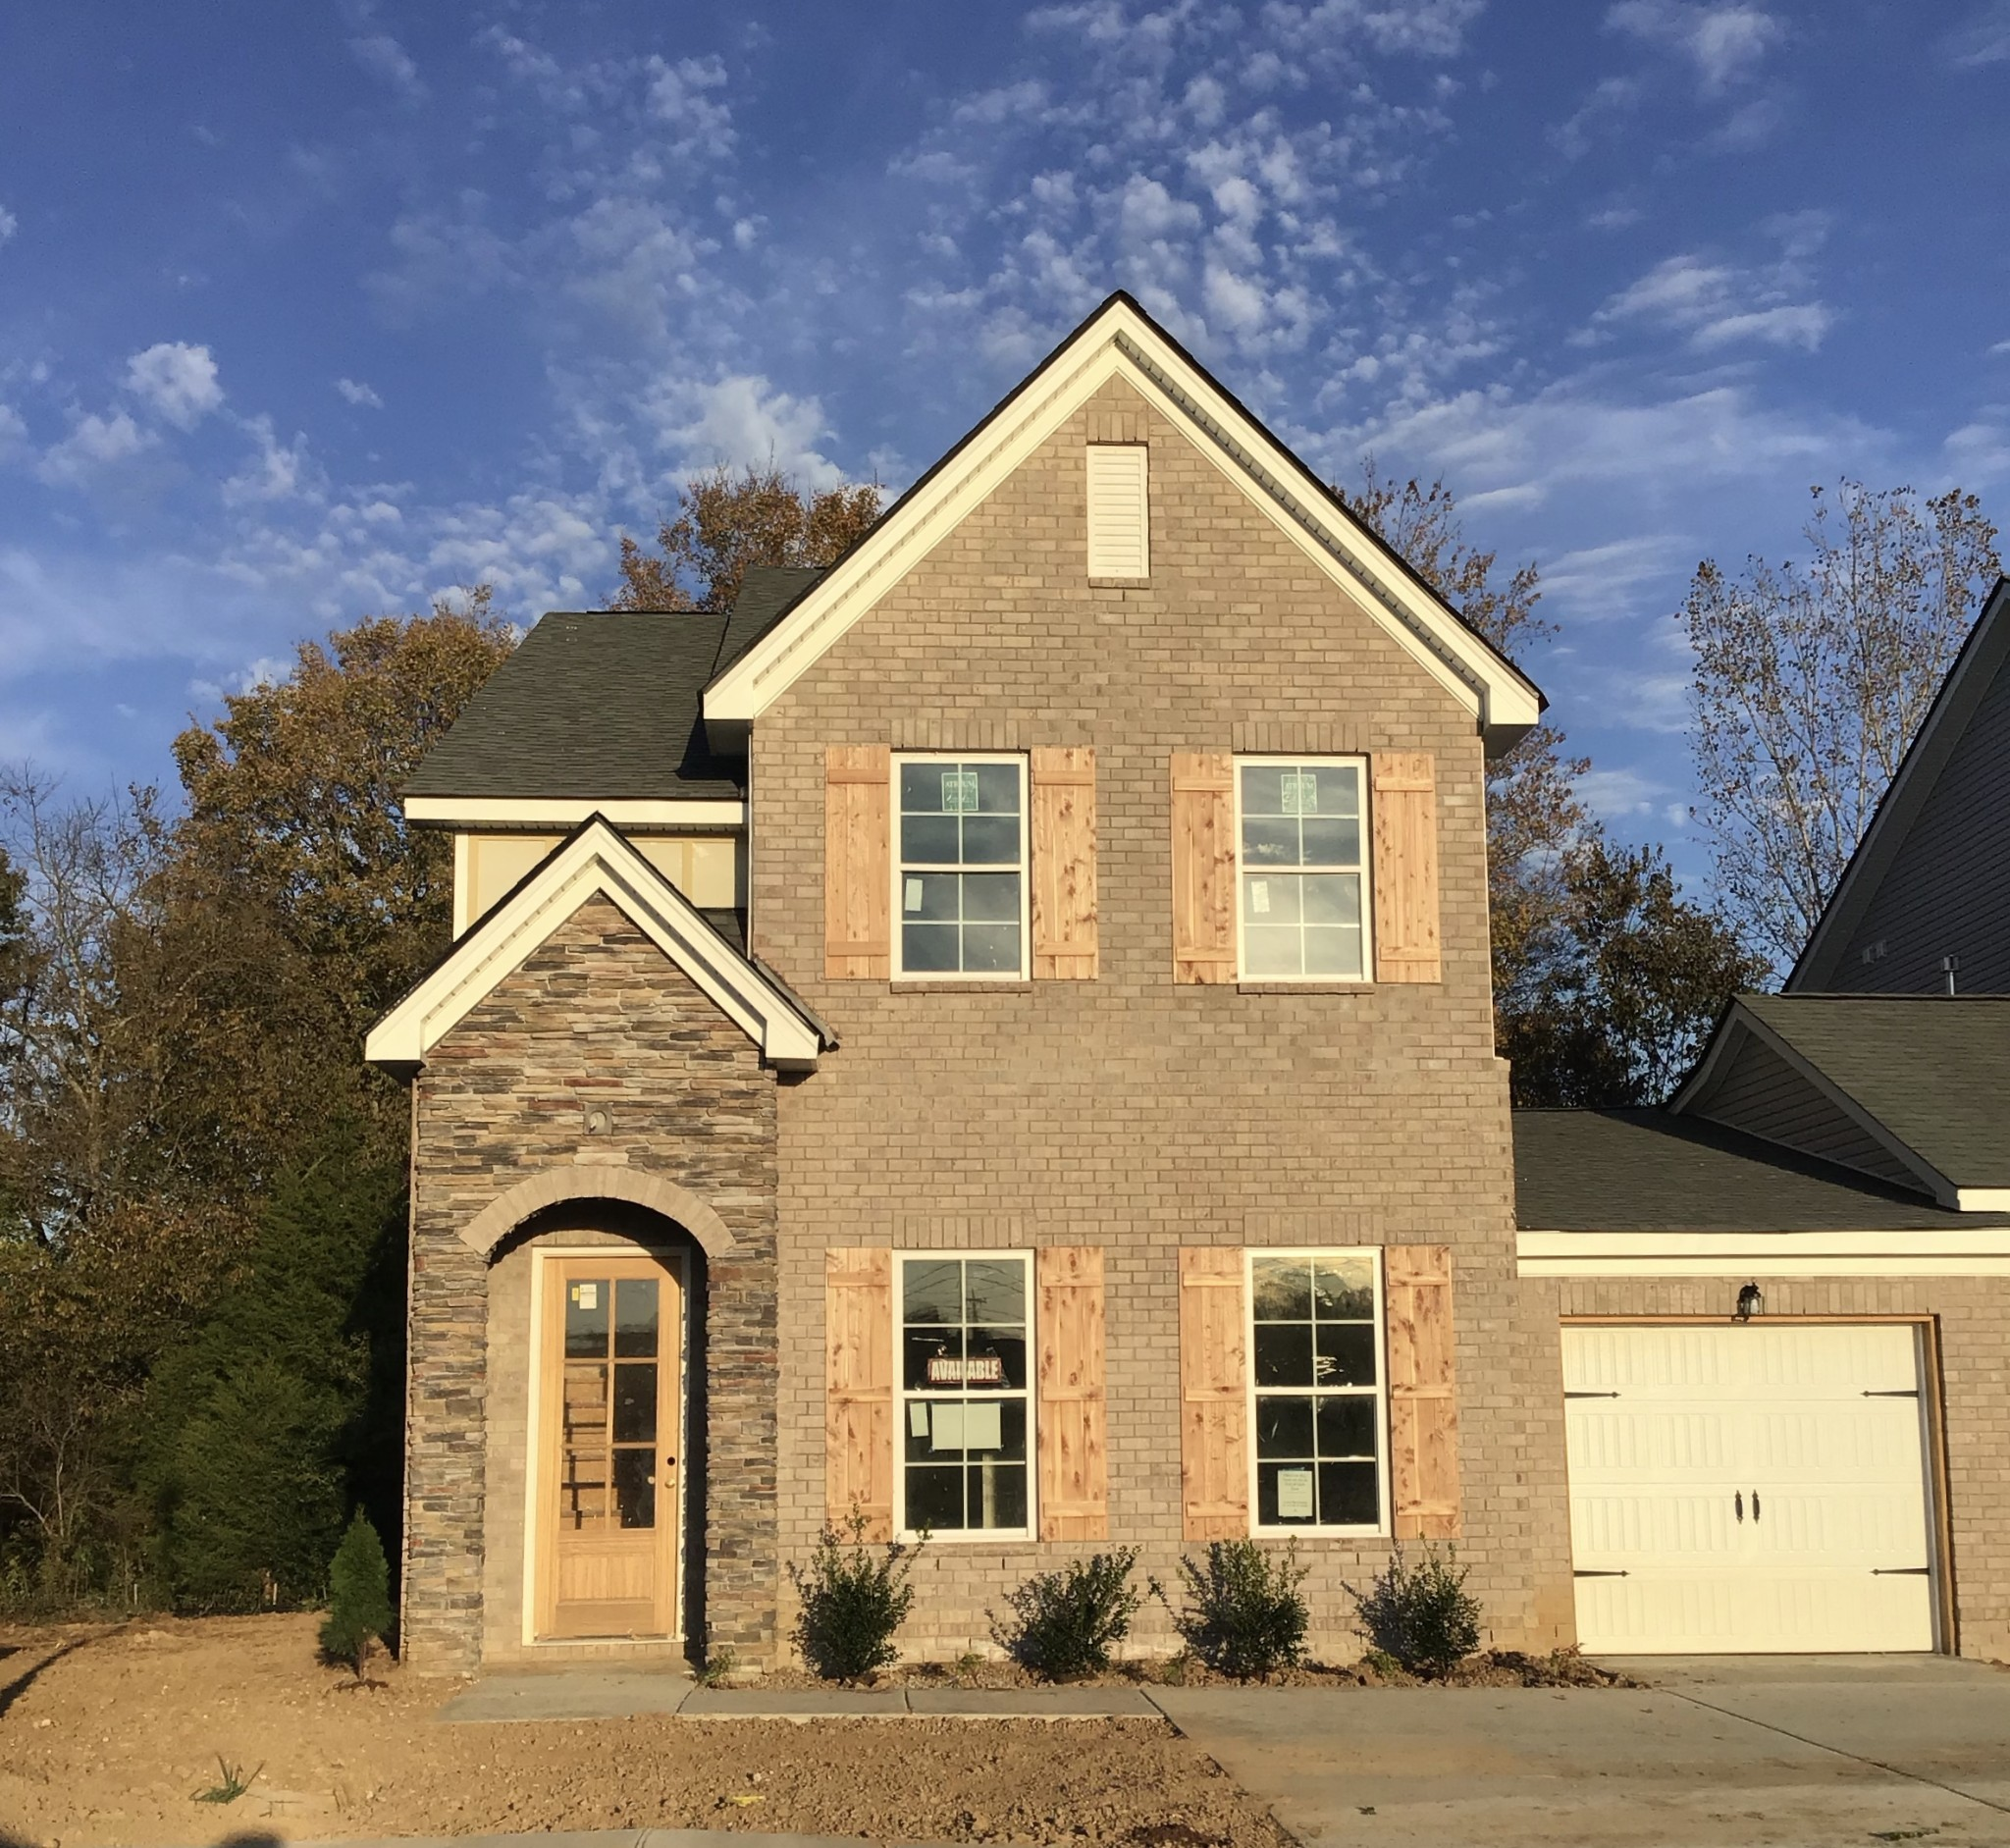 129 Bellagio Villas Dr Lot 18, Spring Hill, TN 37174 - Spring Hill, TN real estate listing